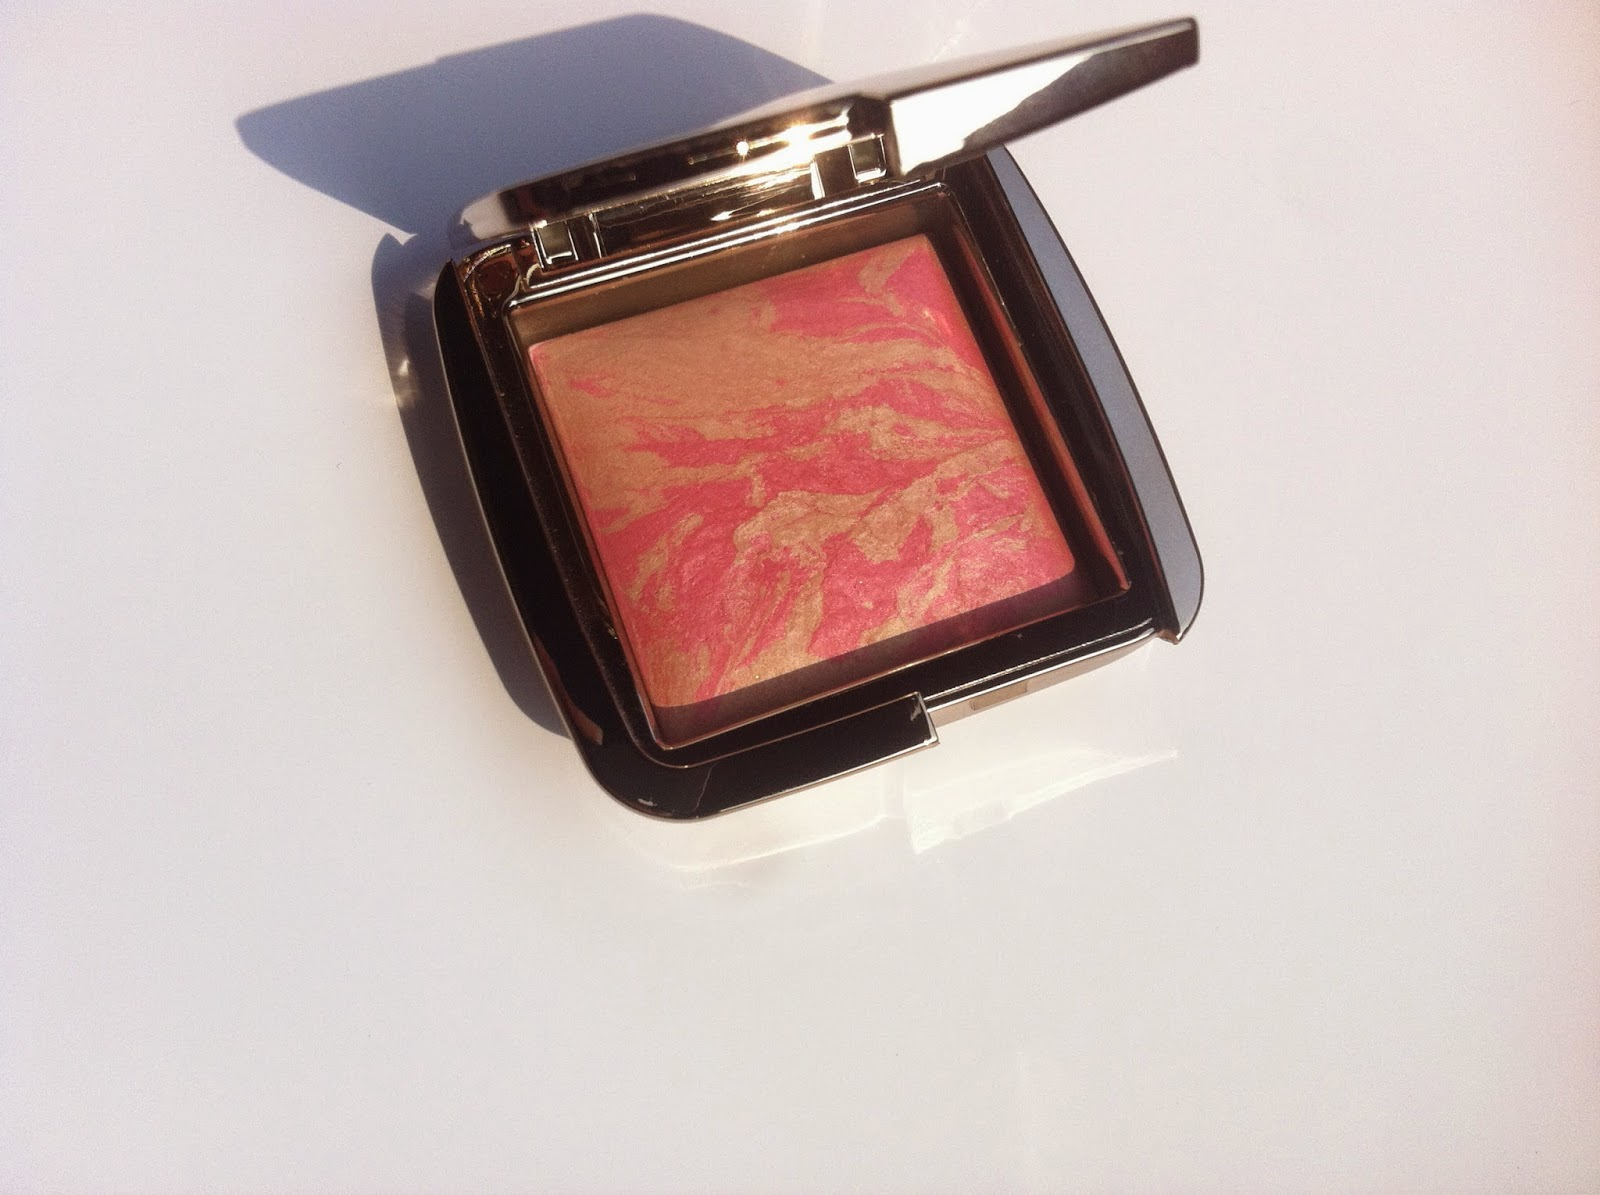 Hourglass Ambient Lighting Blush Luminous Flush, blush corallo, blush luminoso